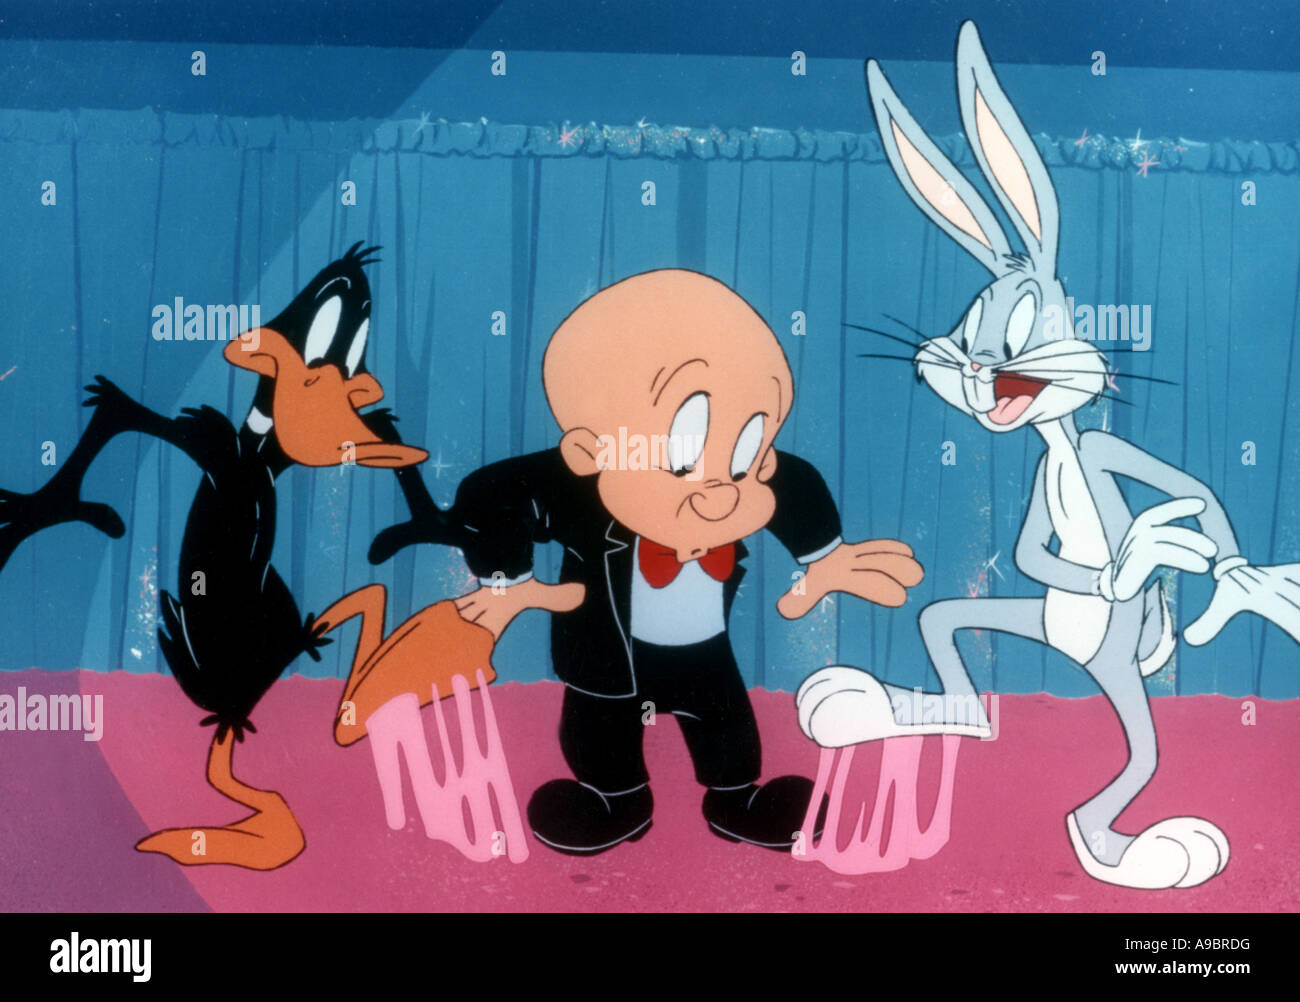 ELMER FUDD - Warner-Cartoon-Figur hier mit Bugs Bunny und Daffy Duck Stockbild